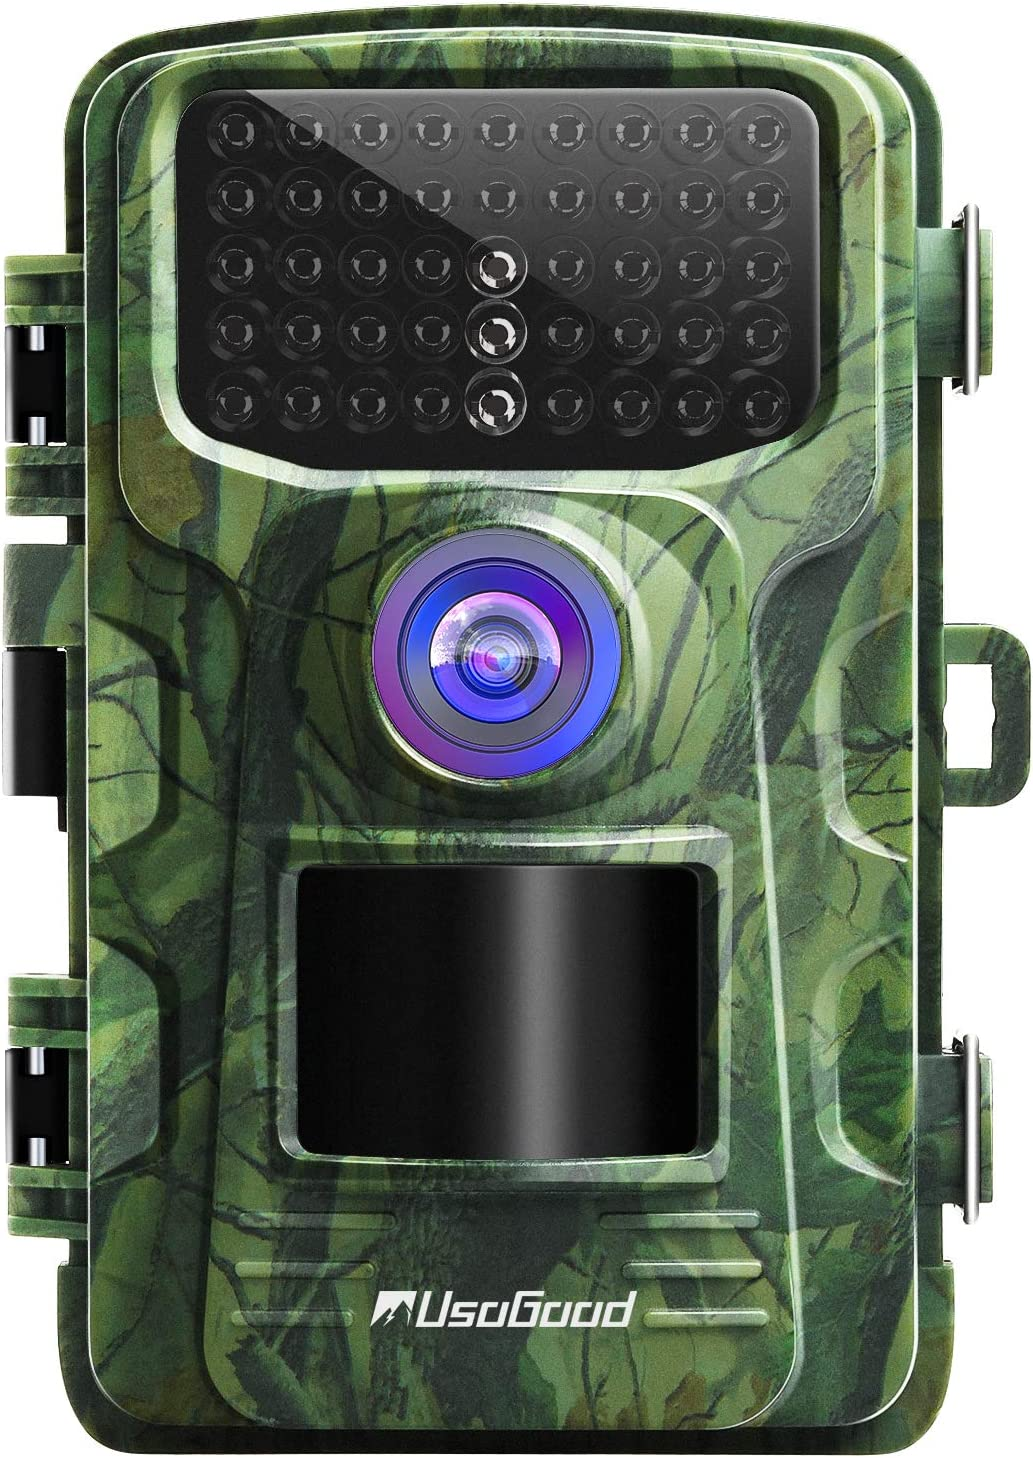 usogood Trail Camera 14MP 1080P No Glow Game Hunting Camera with Night Vision Motion Activated IP66 Waterproof 2.4 LCD for Outdoor Wildlife, Garden, Animal Scouting and Home Security Surveillance